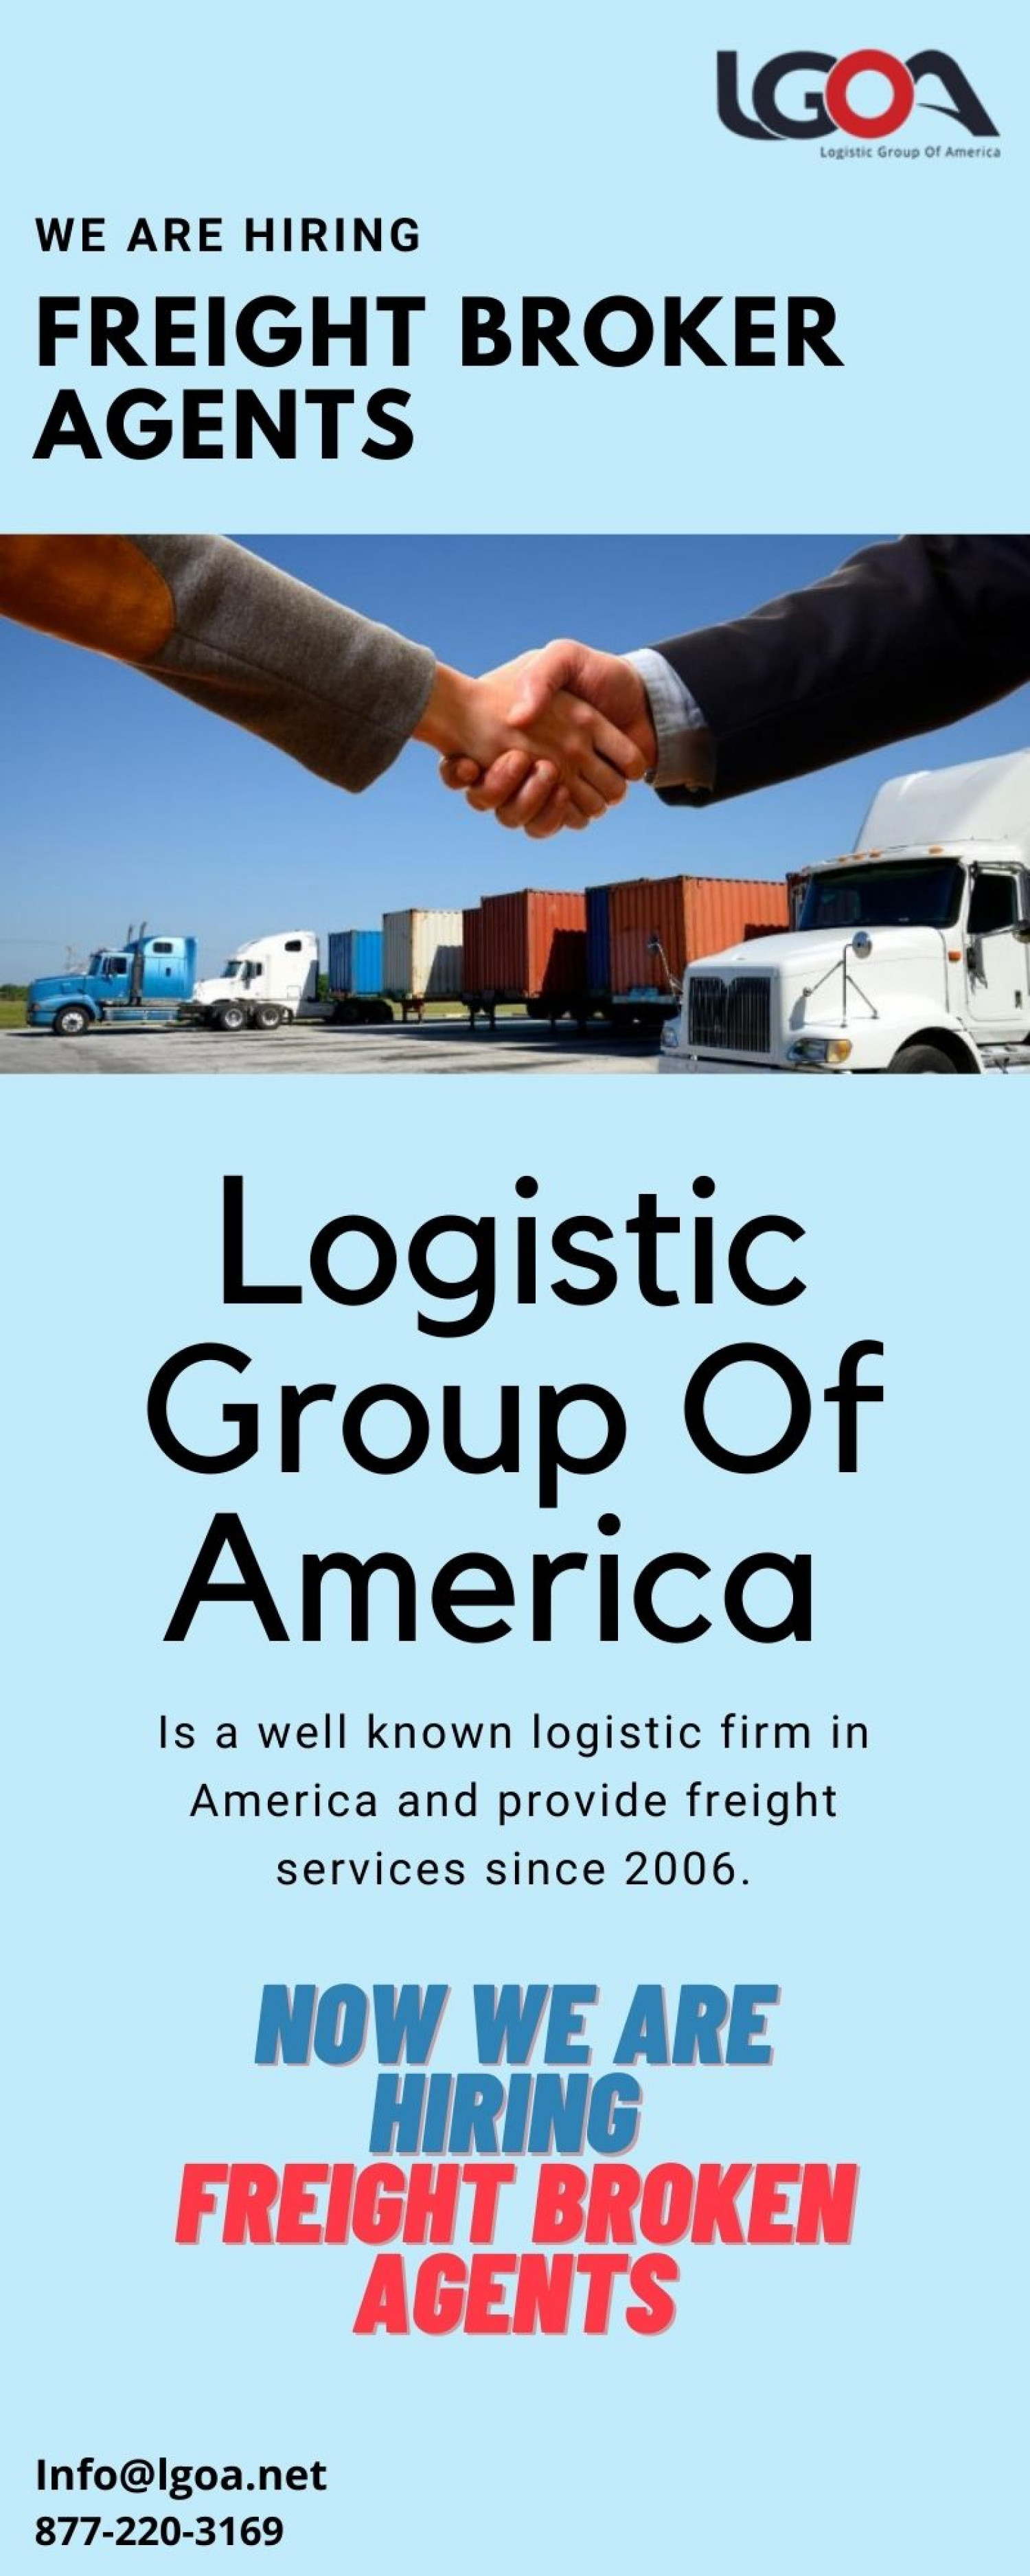 Open Positions For Freight Broker Agents Infographic